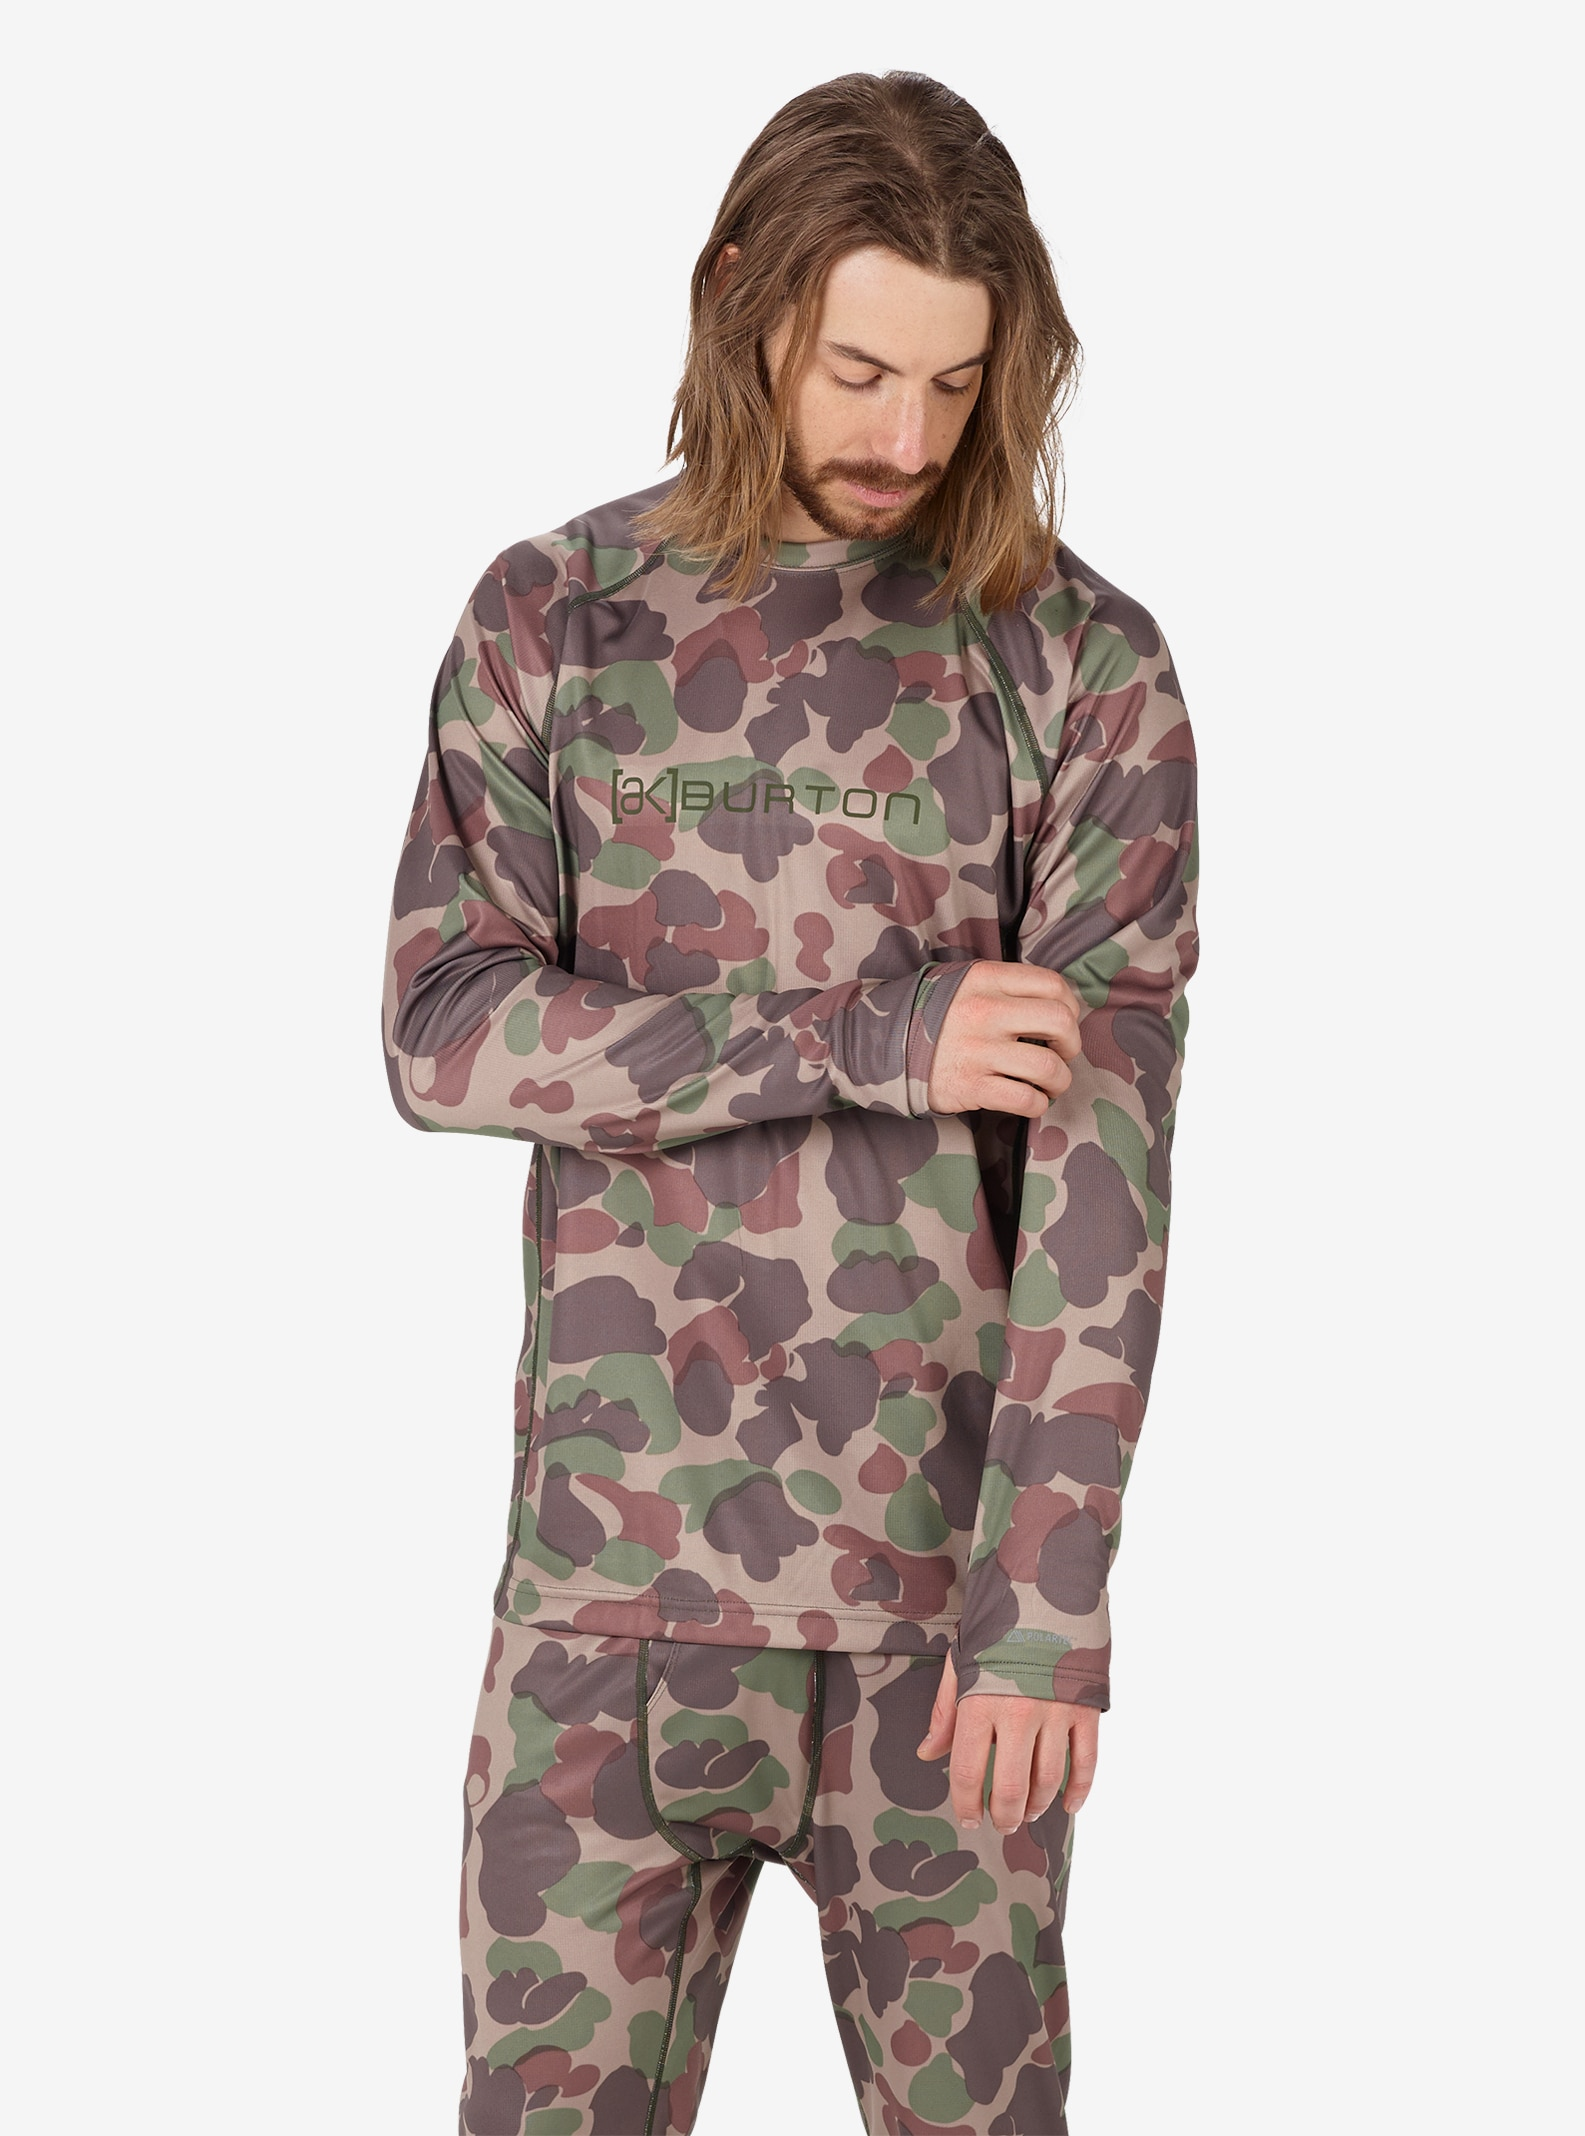 Men's Burton [ak] Power Grid® Crew shown in Kodiak Camo